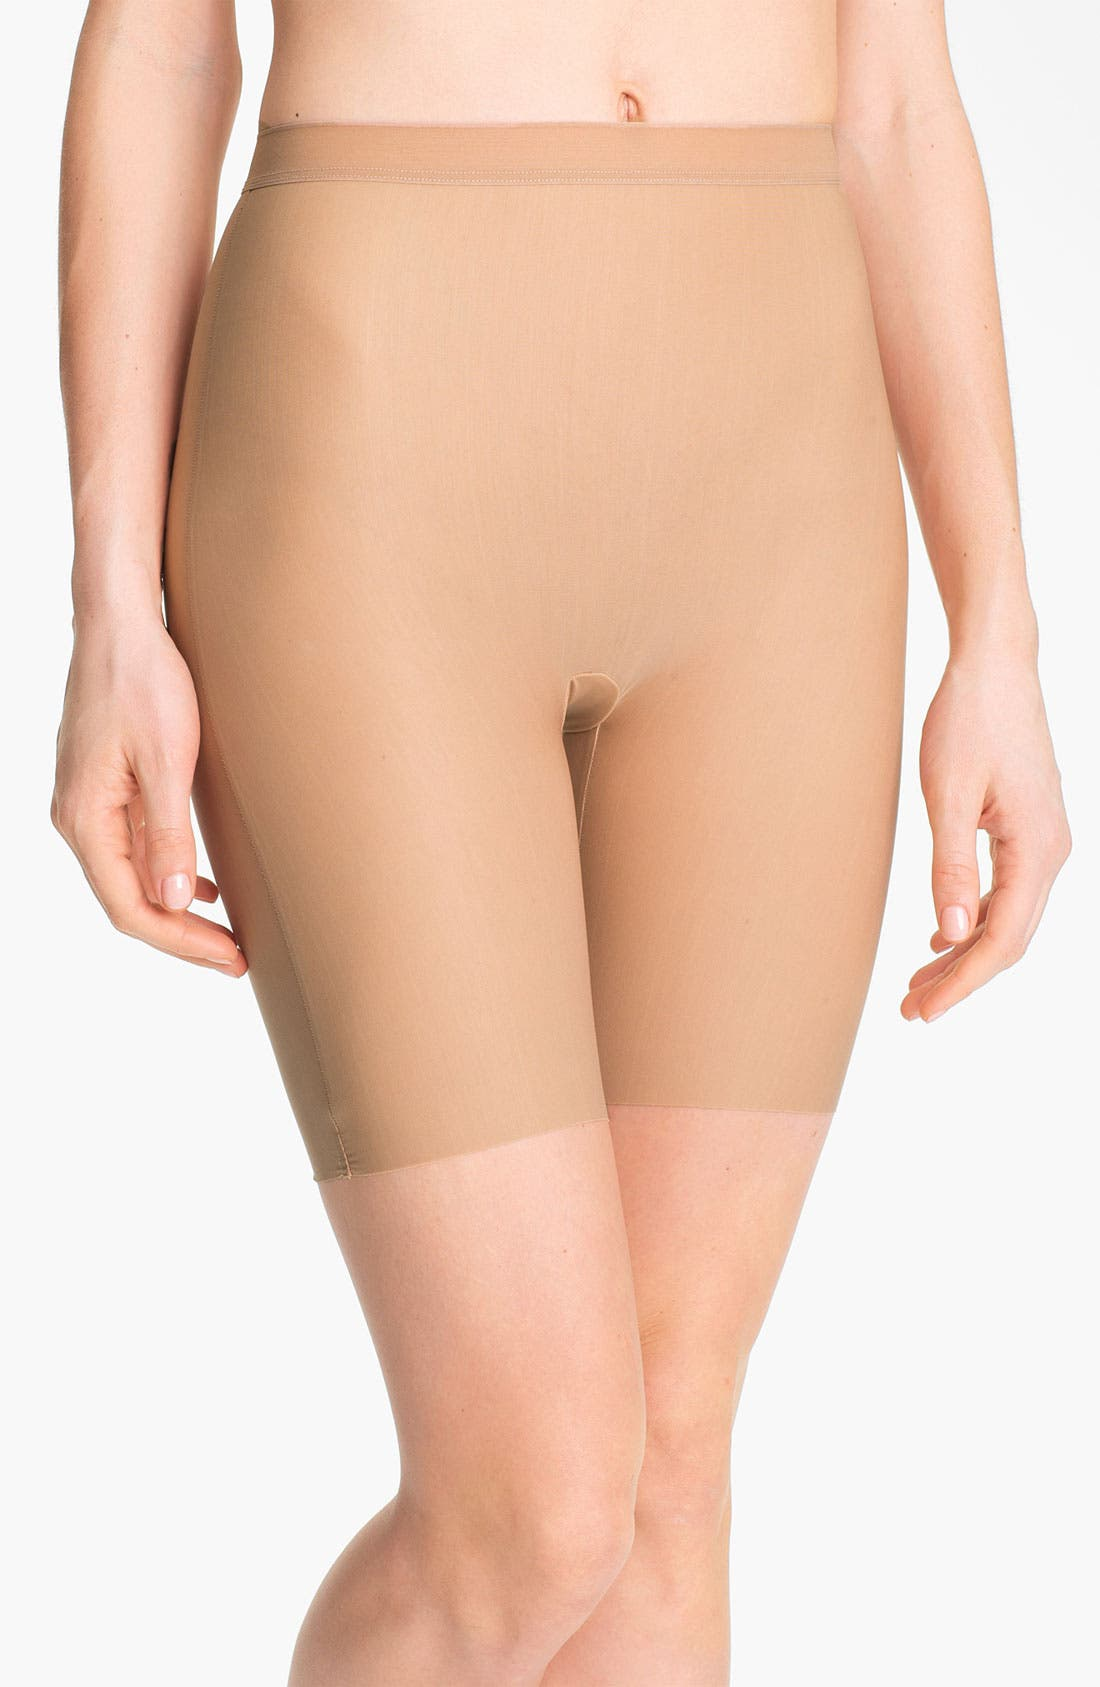 Alternate Image 1 Selected - Wacoal 'Smooth Complexion' Mid-Thigh Shaper Briefs